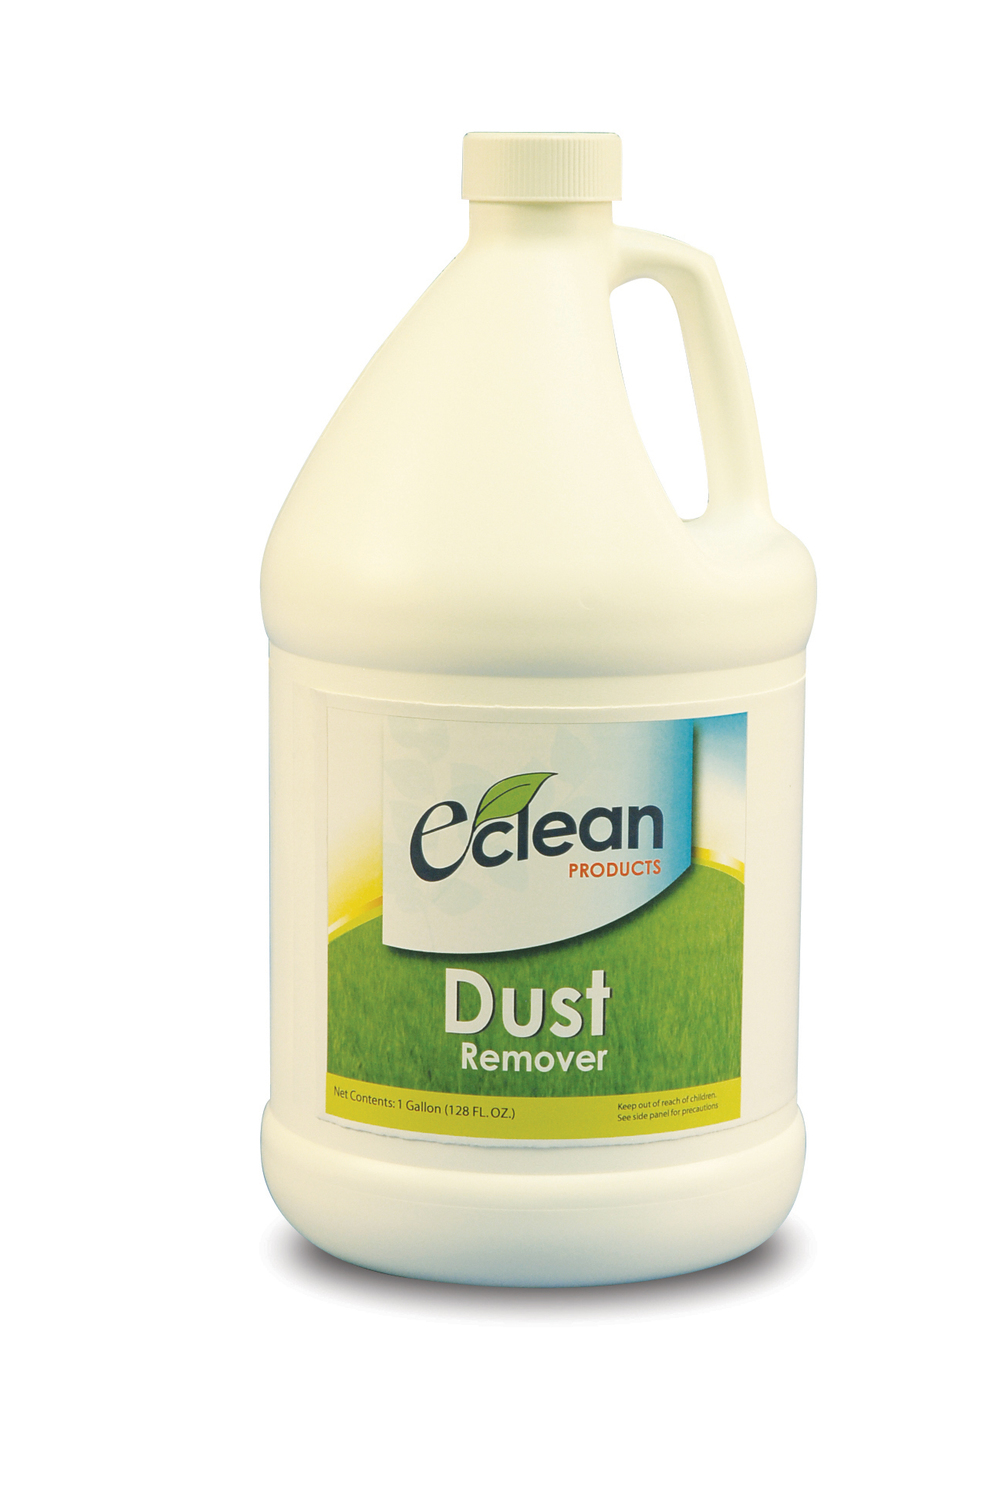 eclean dust remover